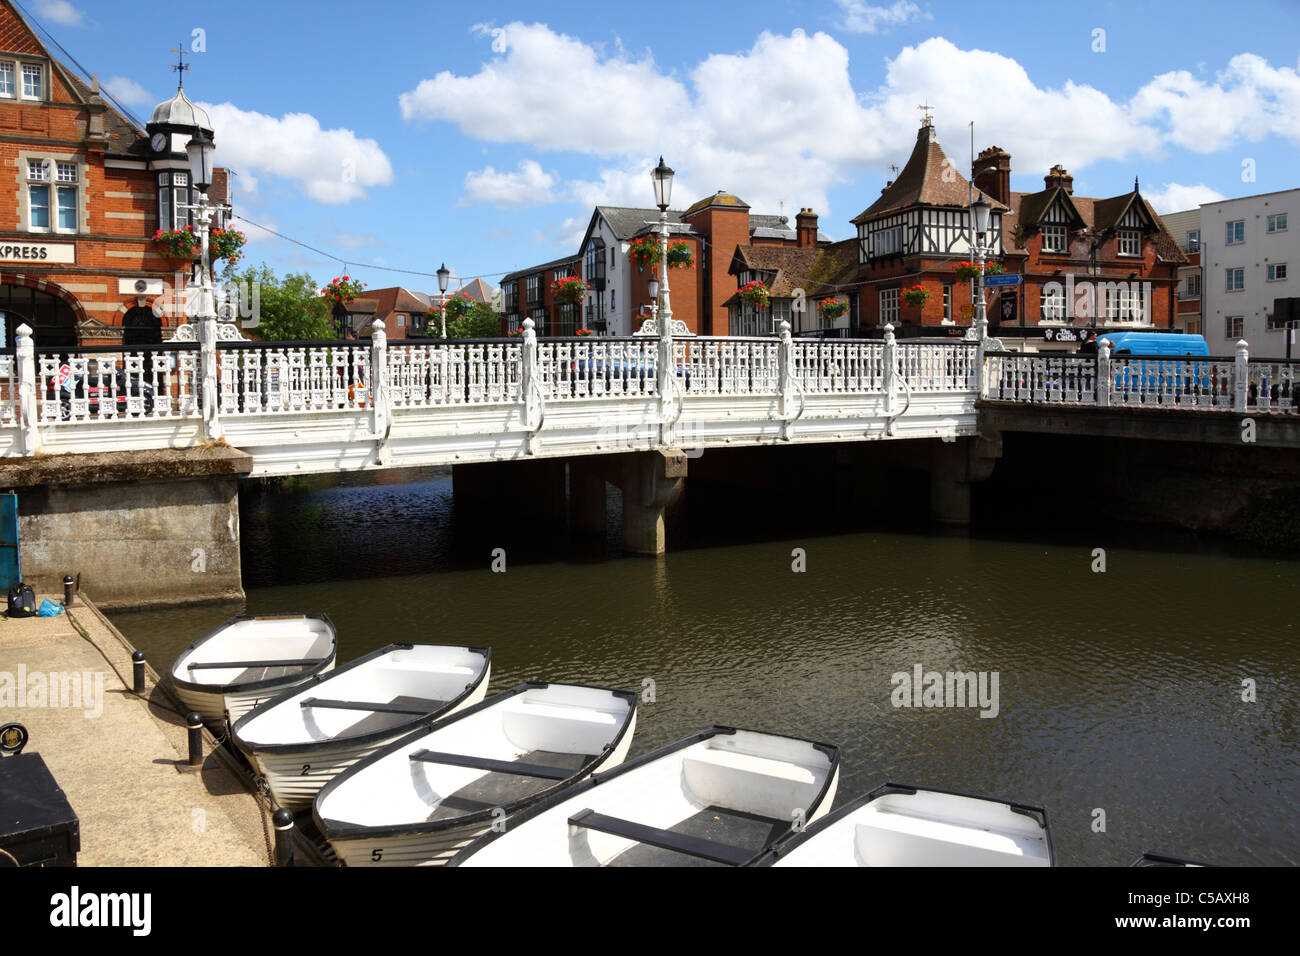 Bridge carrying High Street over River Medway, Tonbridge, Kent , England - Stock Image